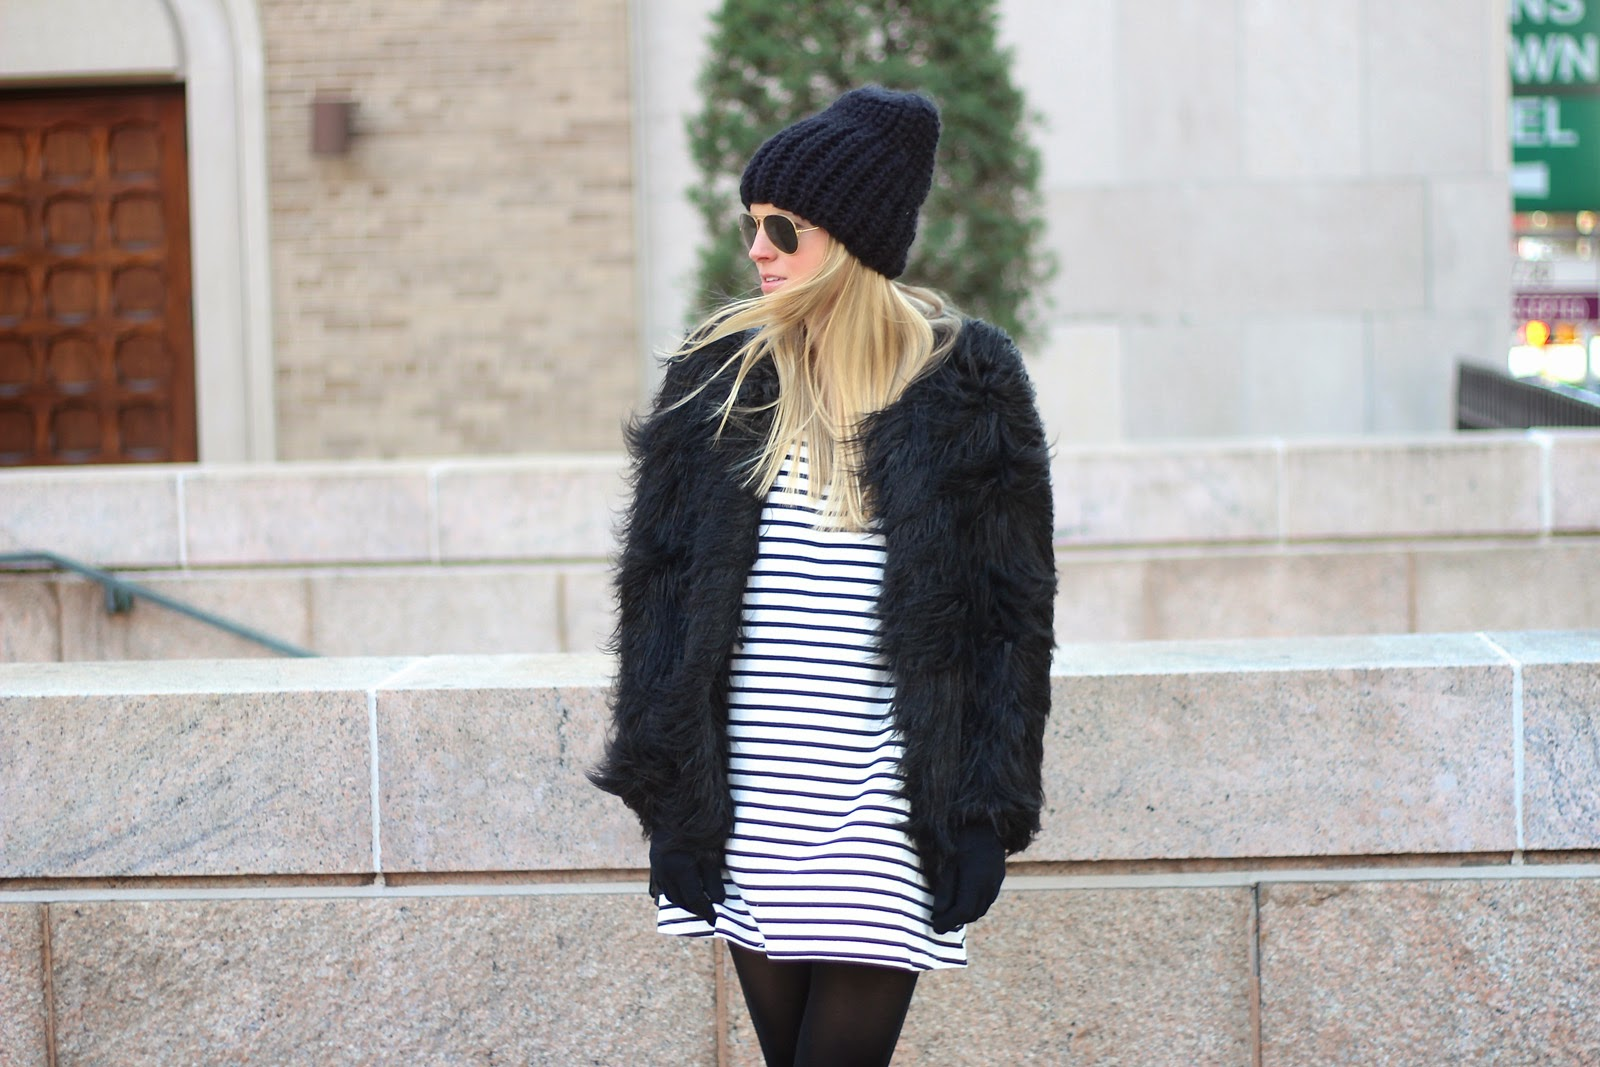 faux fur coat, black beanie, black and white dress, striped dress, black ankle booties